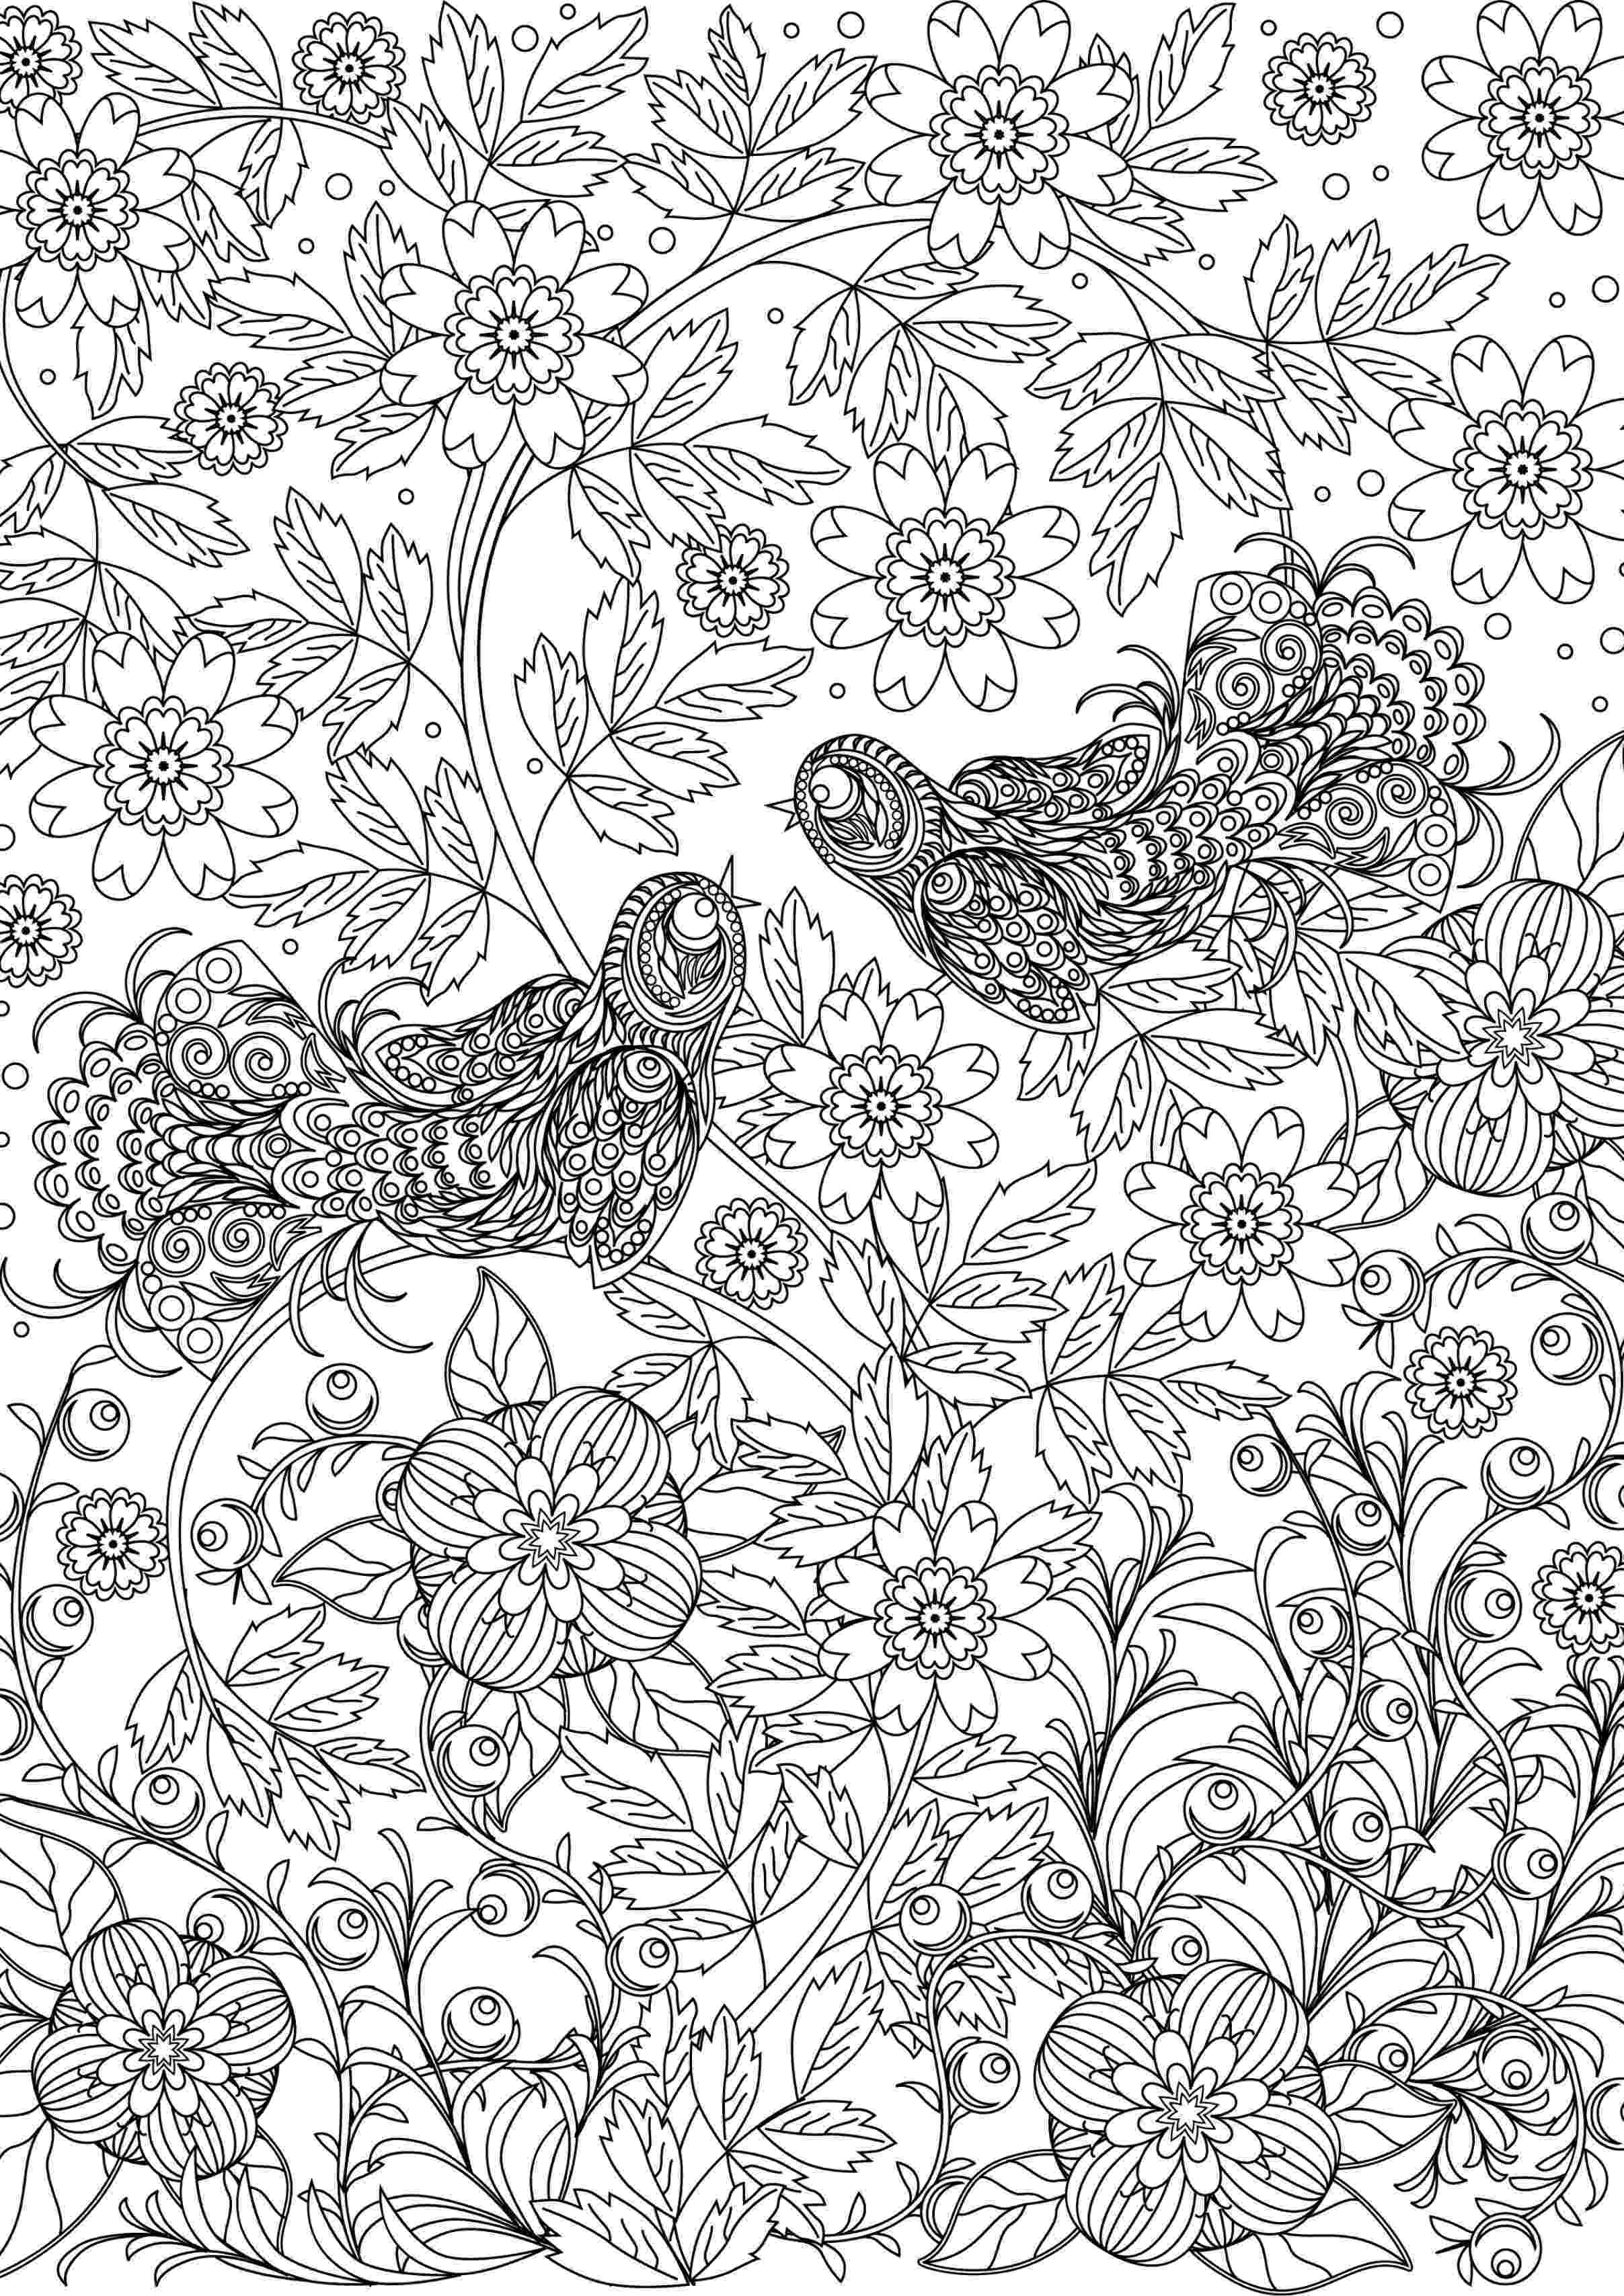 intricate coloring pages 10 intricate adult coloring books to help you de stress coloring intricate pages